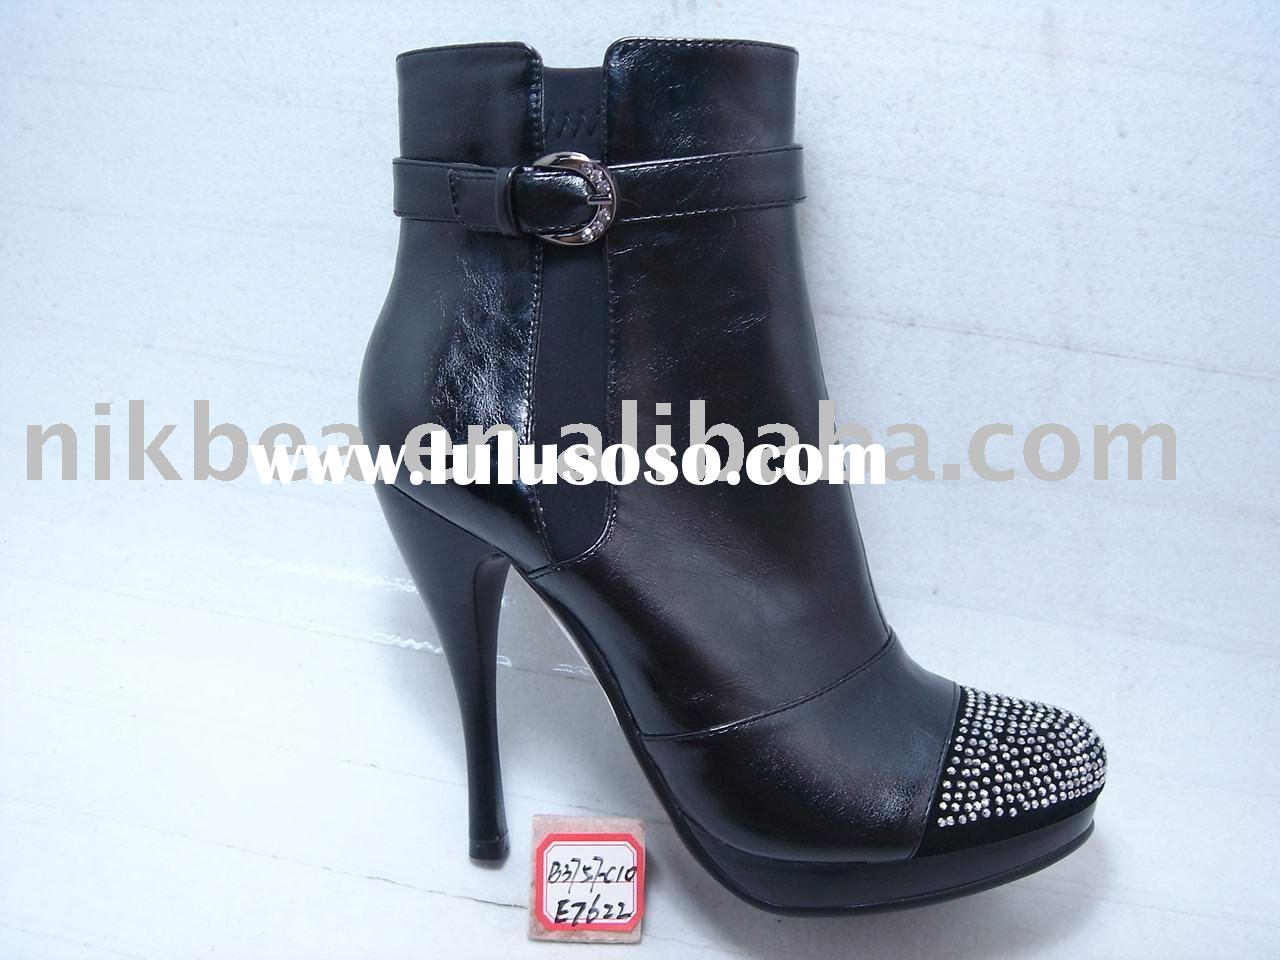 2011 New Fashion Cheap High Heel Woman Boots for wholesale